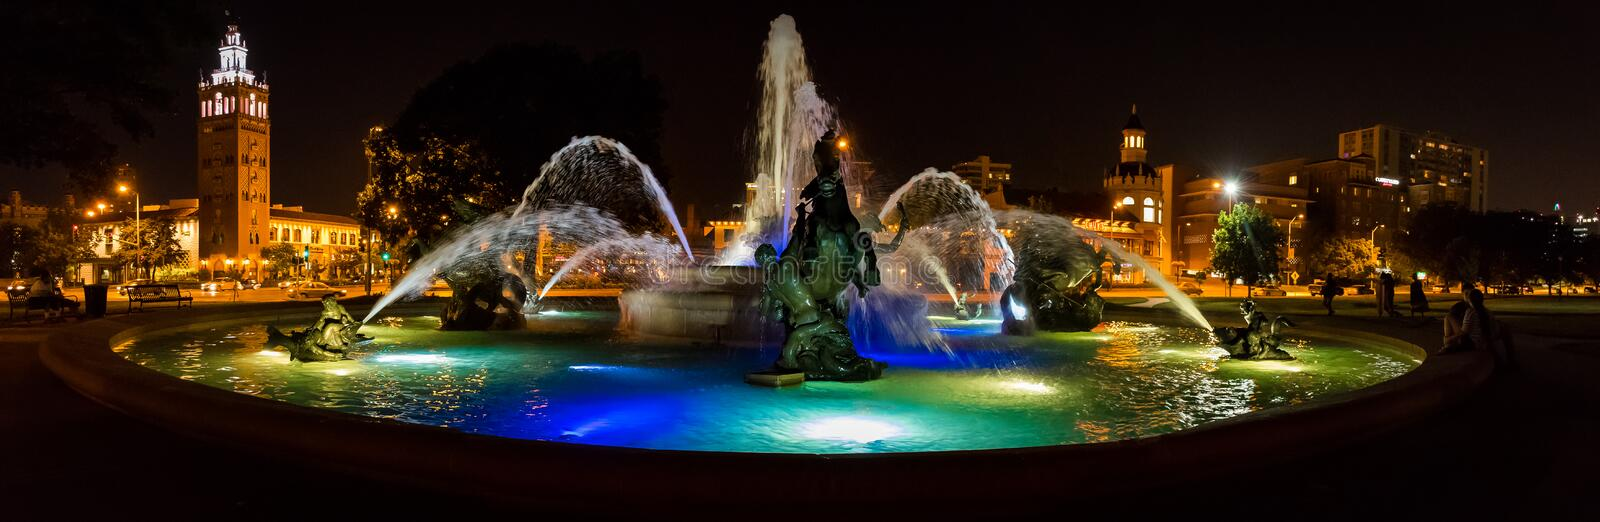 J C Nichols Memorial Fountain at night in Kansas City stock photo